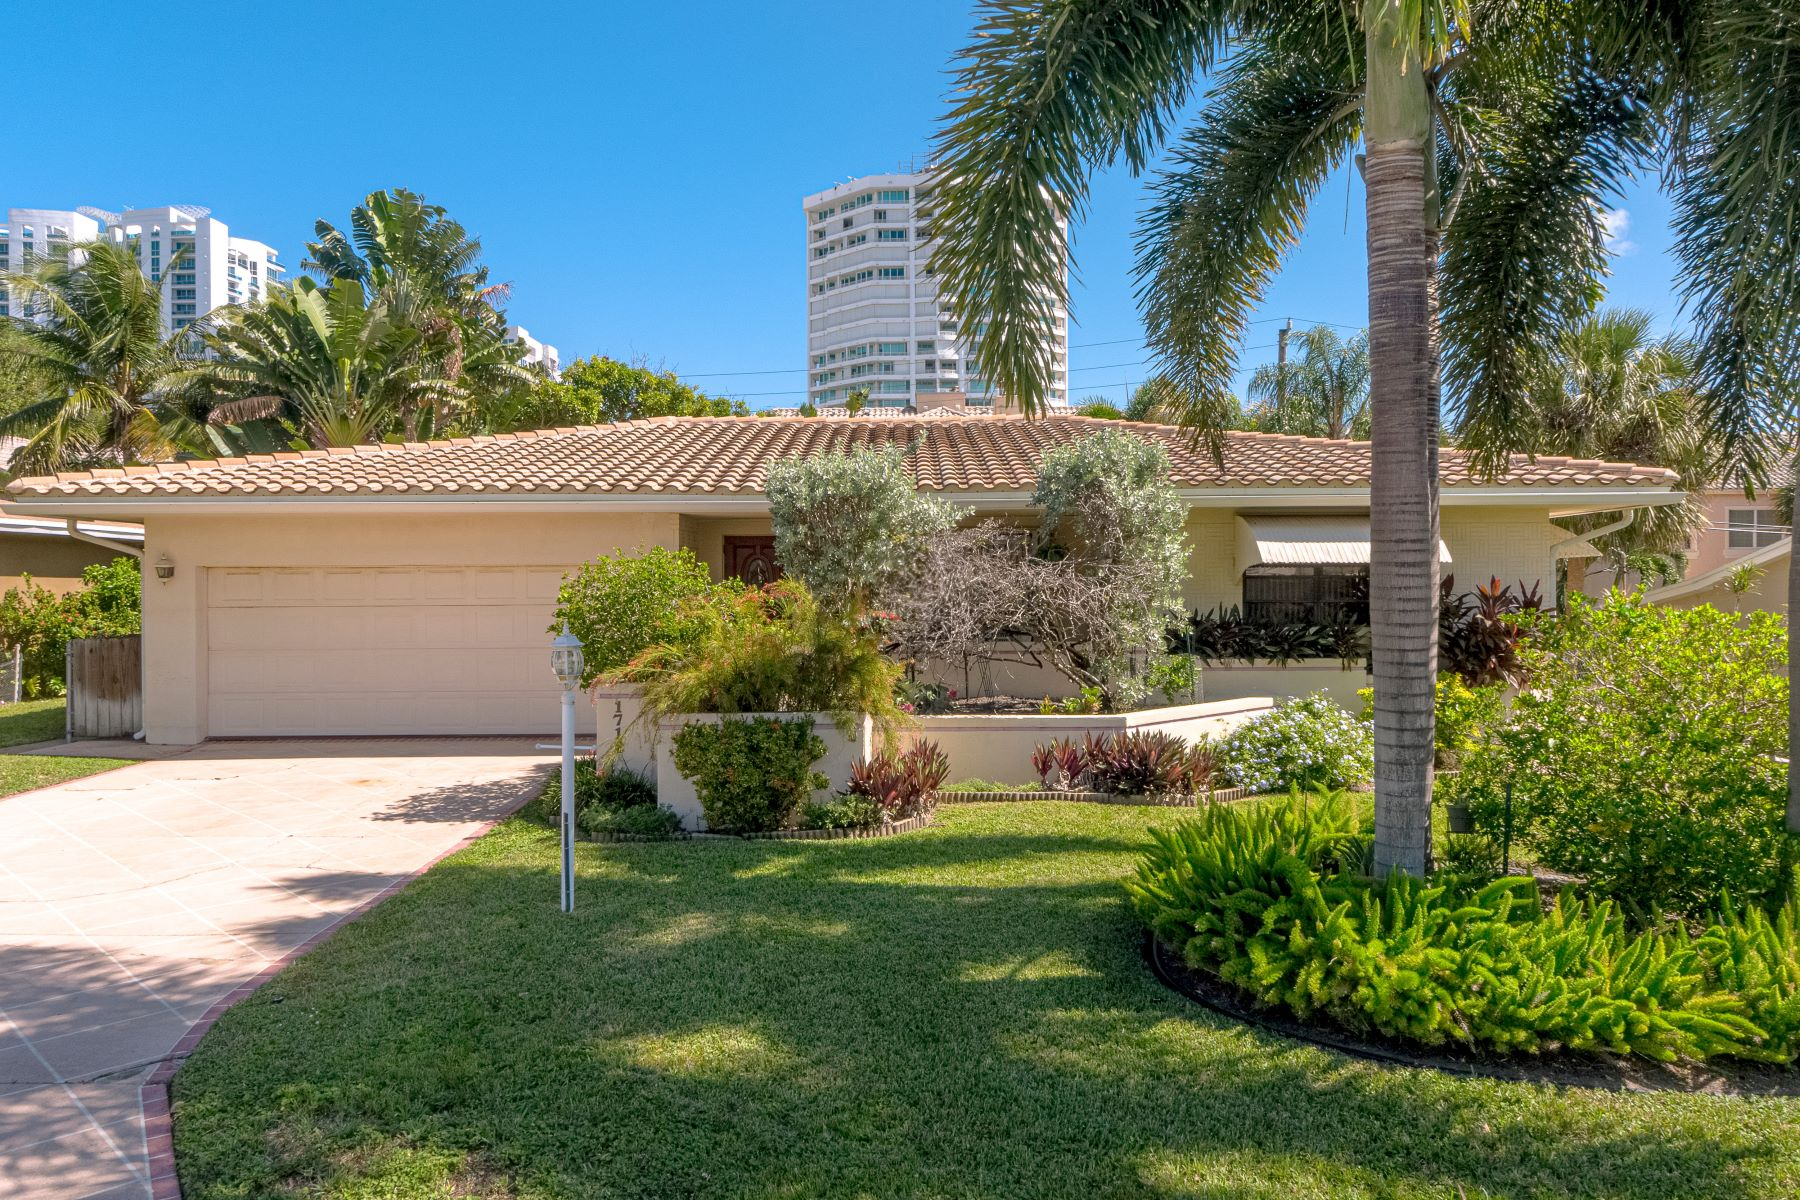 Single Family Homes for Sale at 1712 Bel Air Ave Lauderdale By The Sea, Florida 33062 United States